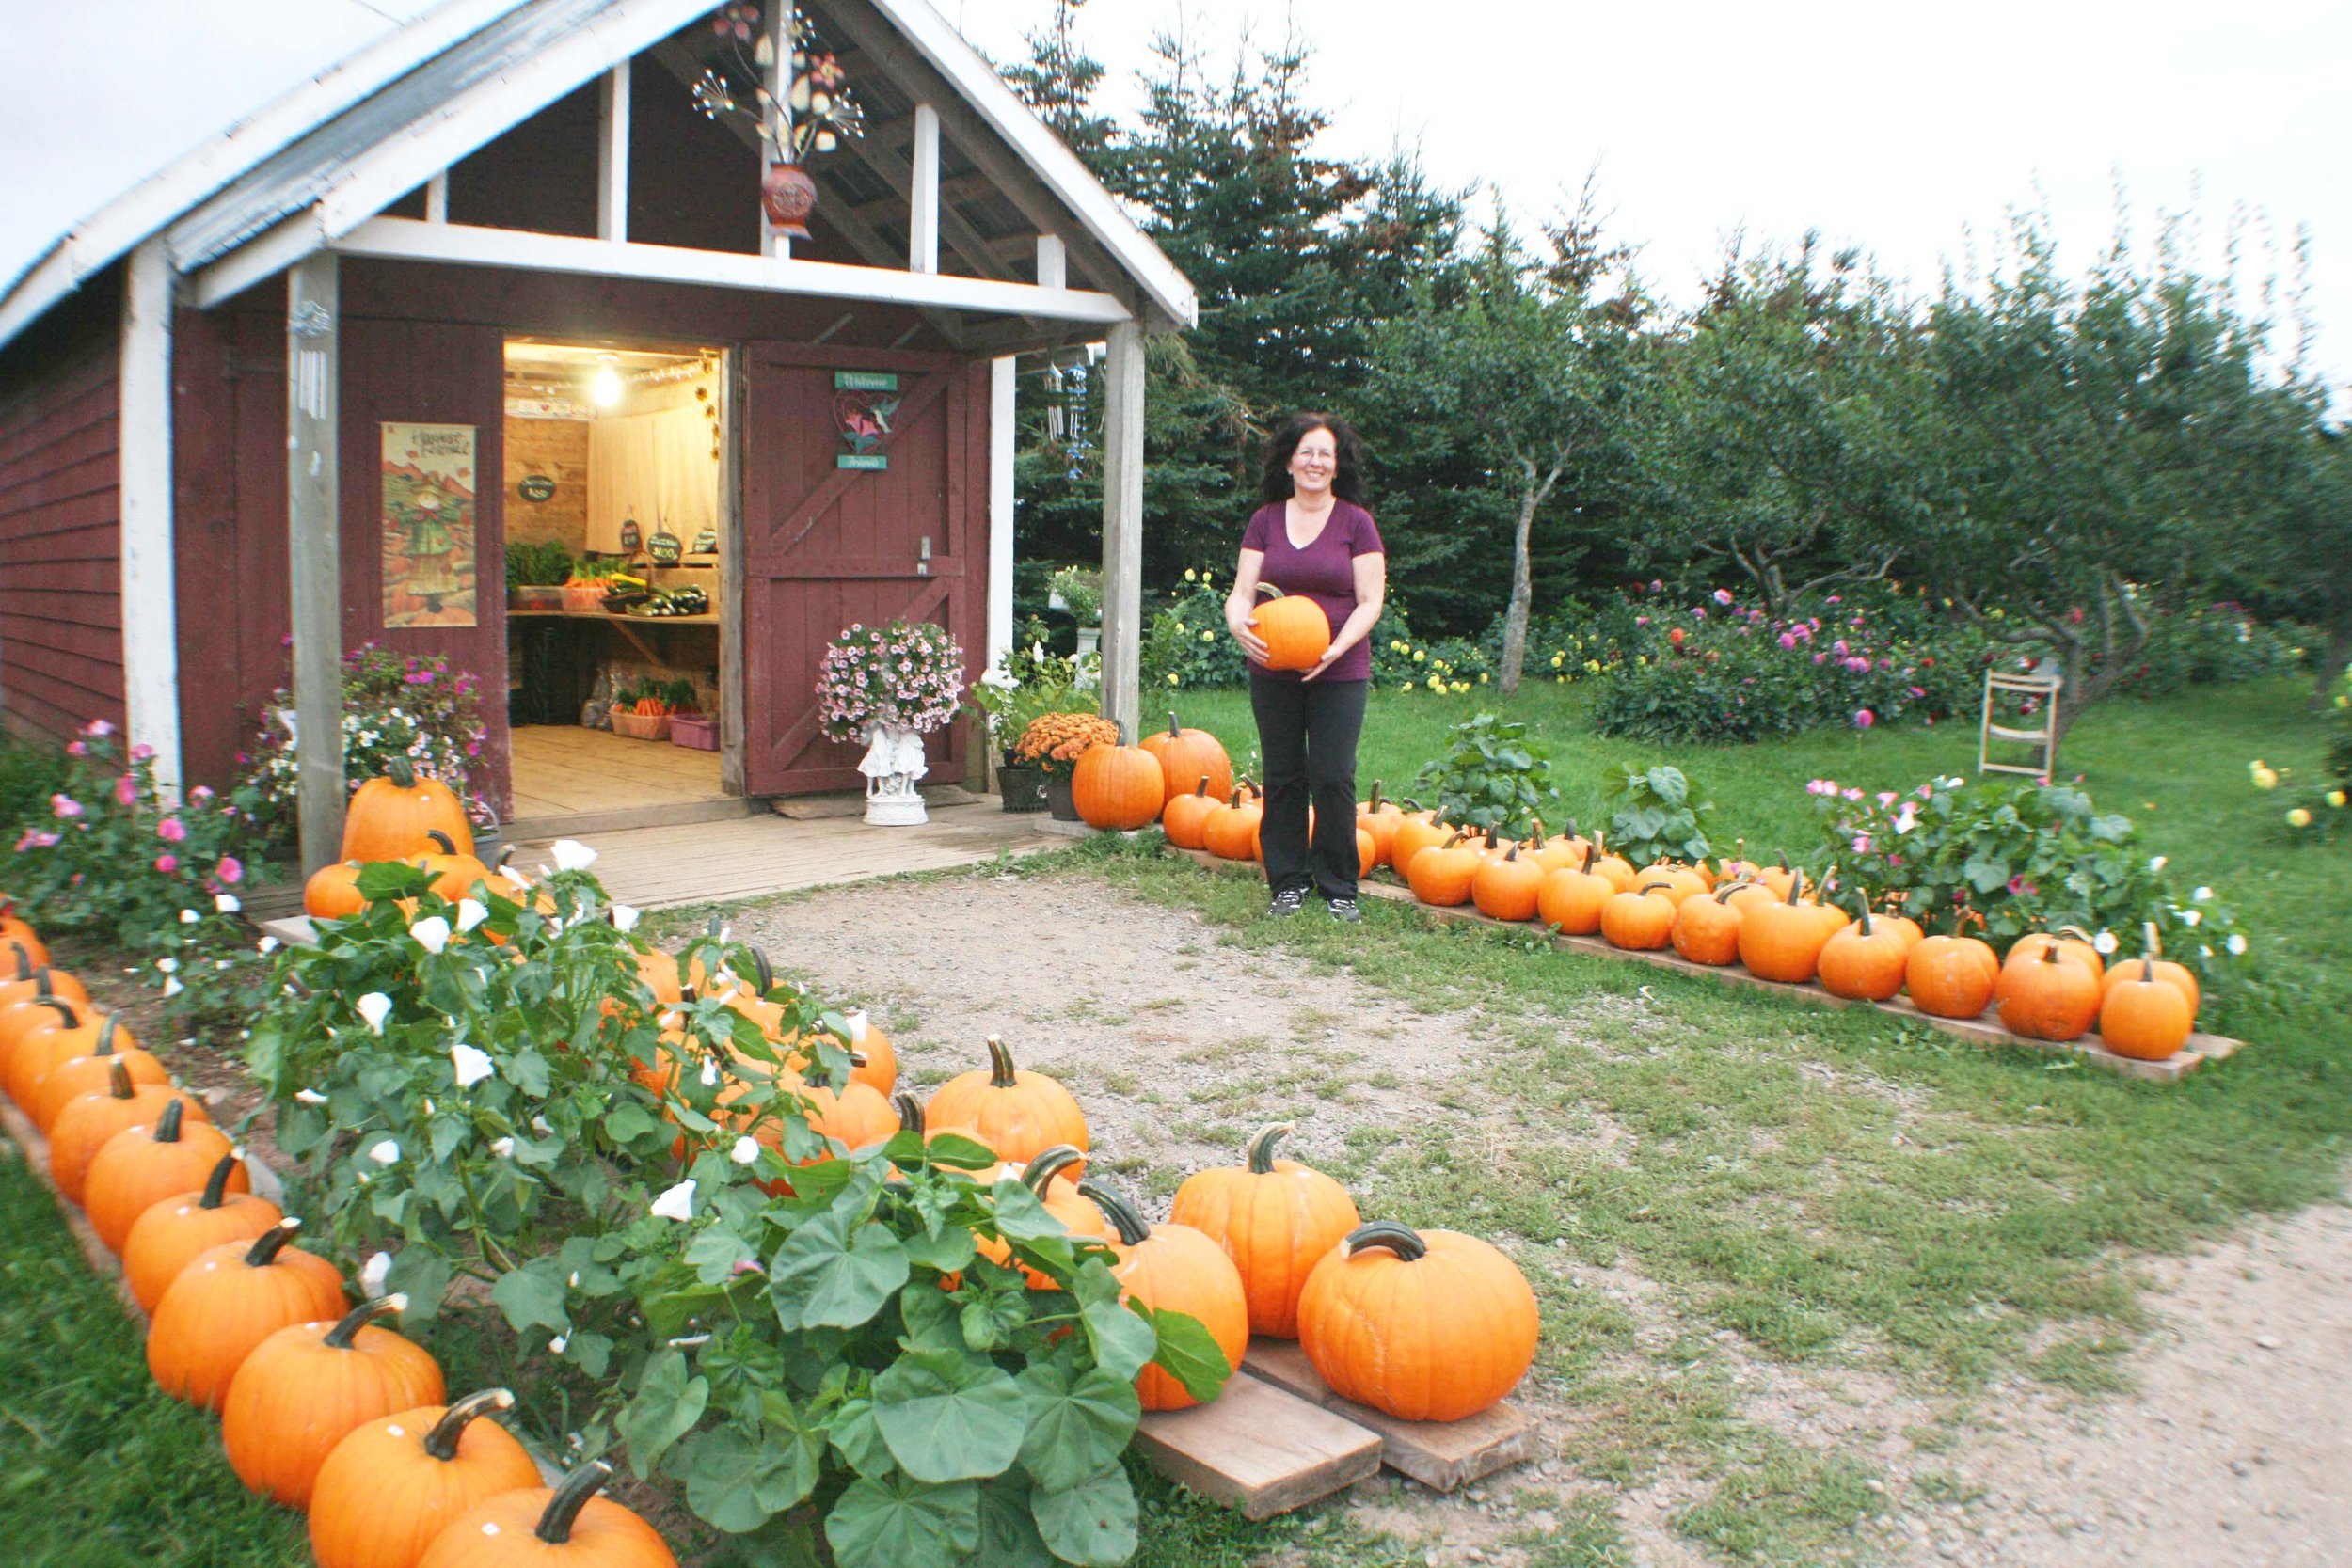 It was a bumper crop of pumpkins this year at Murray's Farm Fresh Vegetables. Shelley Murray holds one of the many pumpkins of different sizes for sale at her family's farm market. (Joan LeBlanc photos)